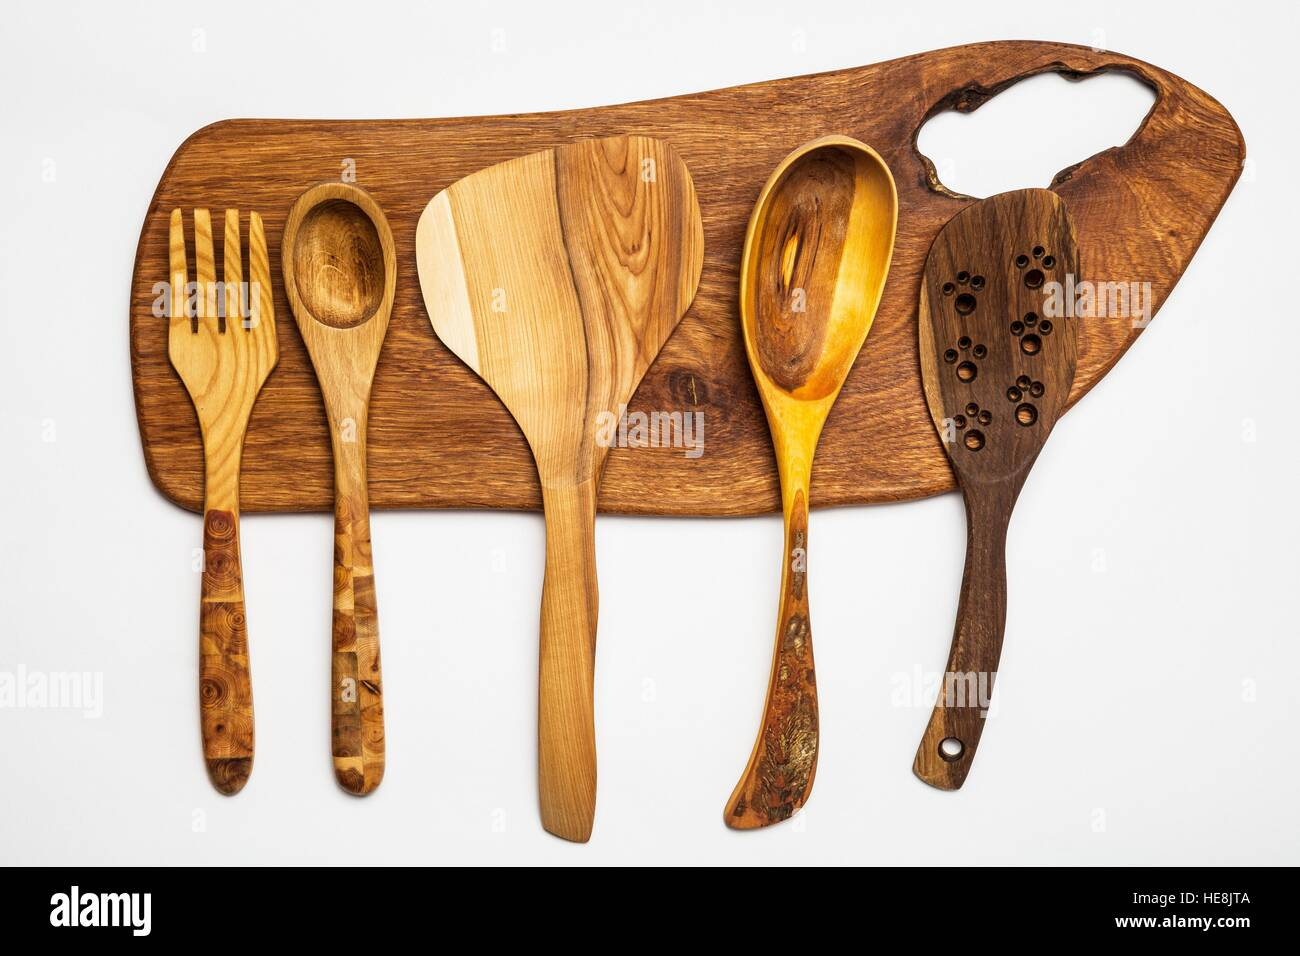 Kitchen equipment - wooden tools,cutting table isolated on white. - Stock Image